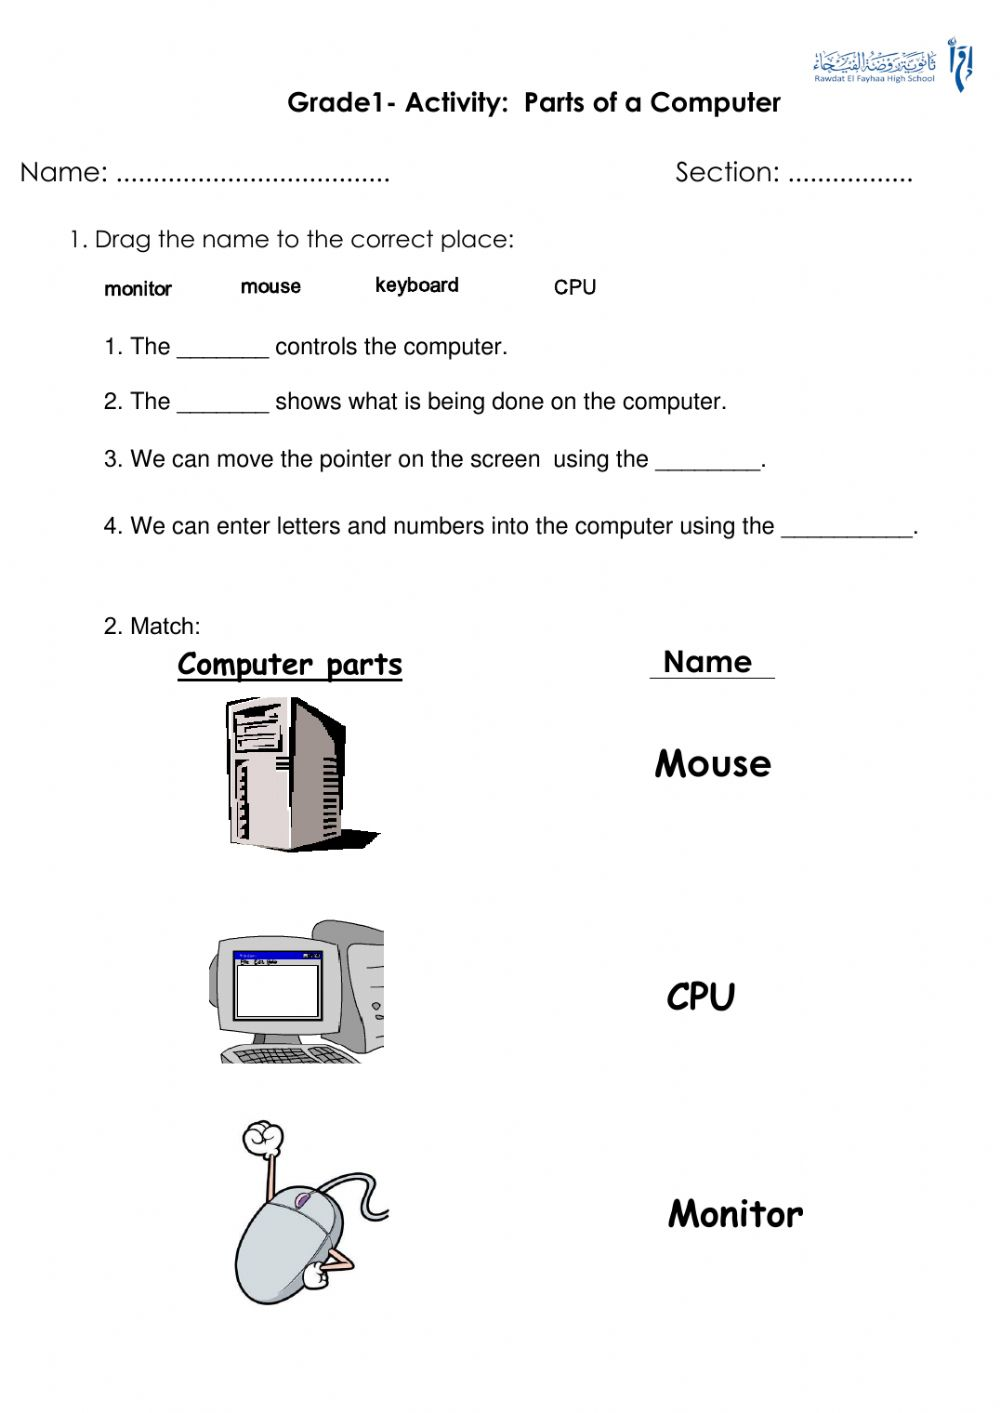 medium resolution of Grade1- parts of a computer worksheet